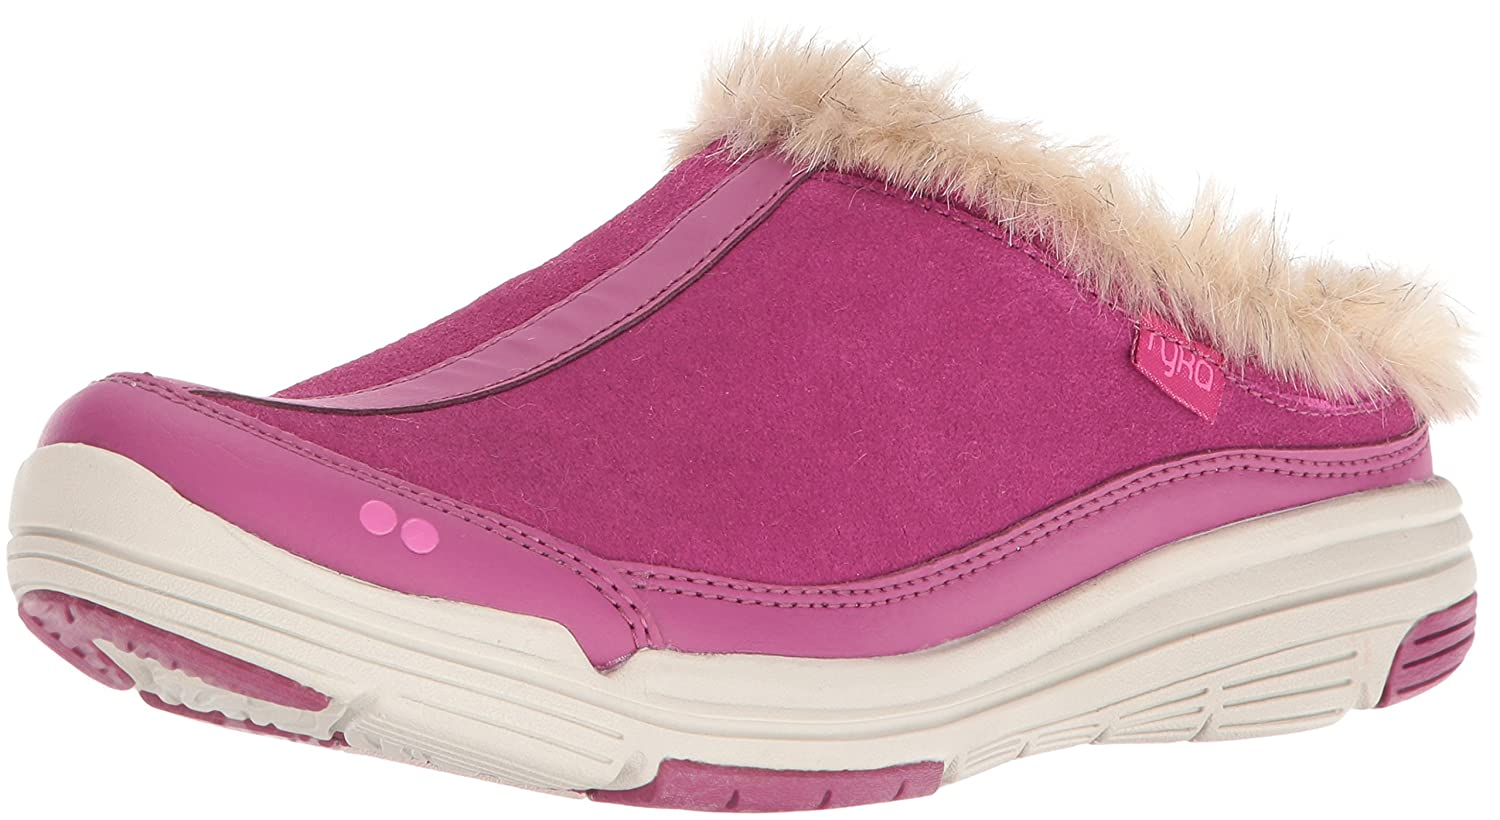 Ryka Women's Azure Fashion Sneaker B01BII2XEI 8 B(M) US|Wine/Pink/Grey